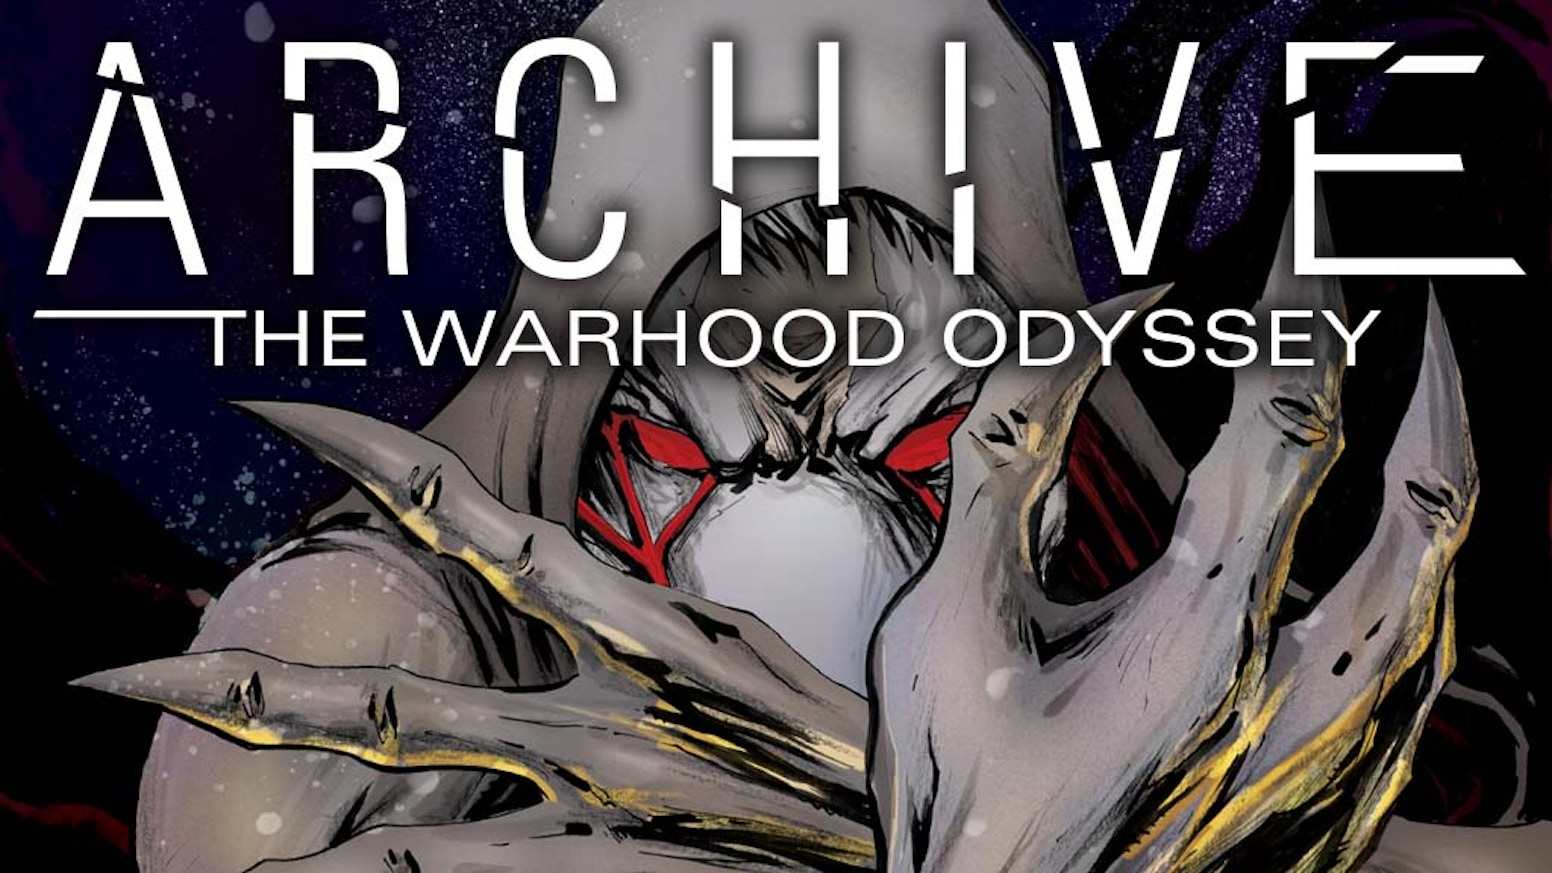 THE WARHOOD: An unwilling and unlikely hero is forced to use a futuristic weapon against its creator to save a dying planet!